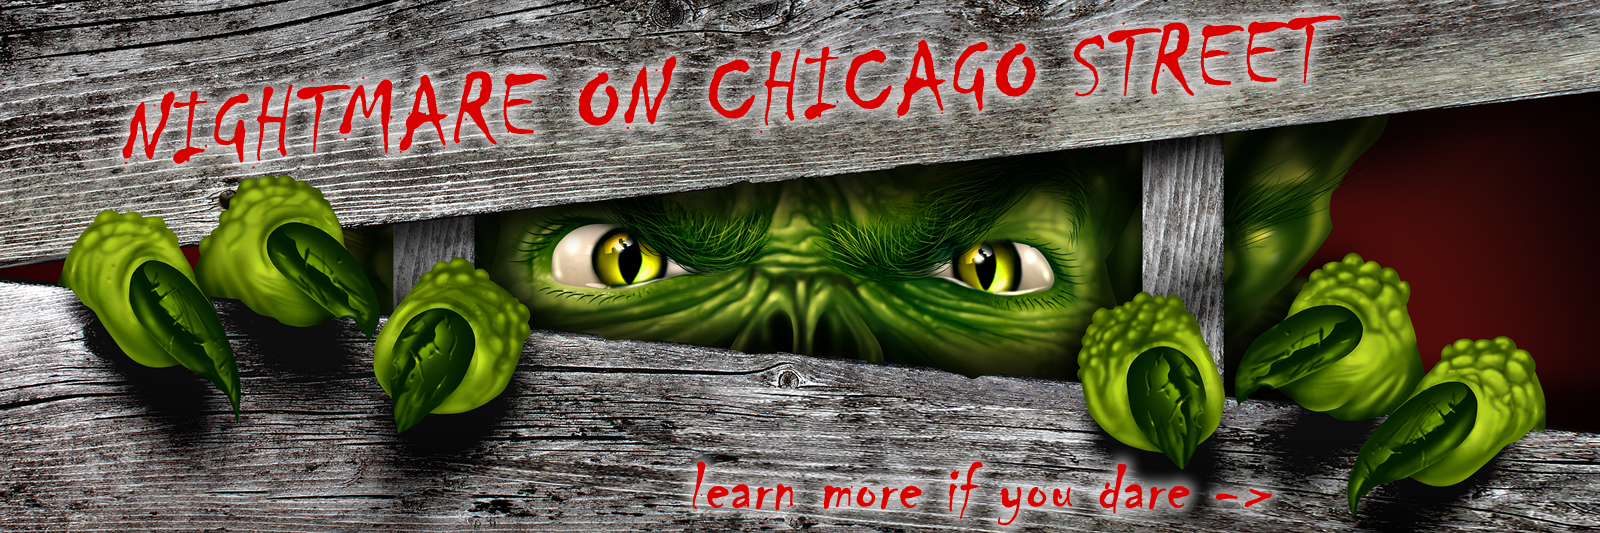 Nightmare-On-Chicago-Street.fw.png